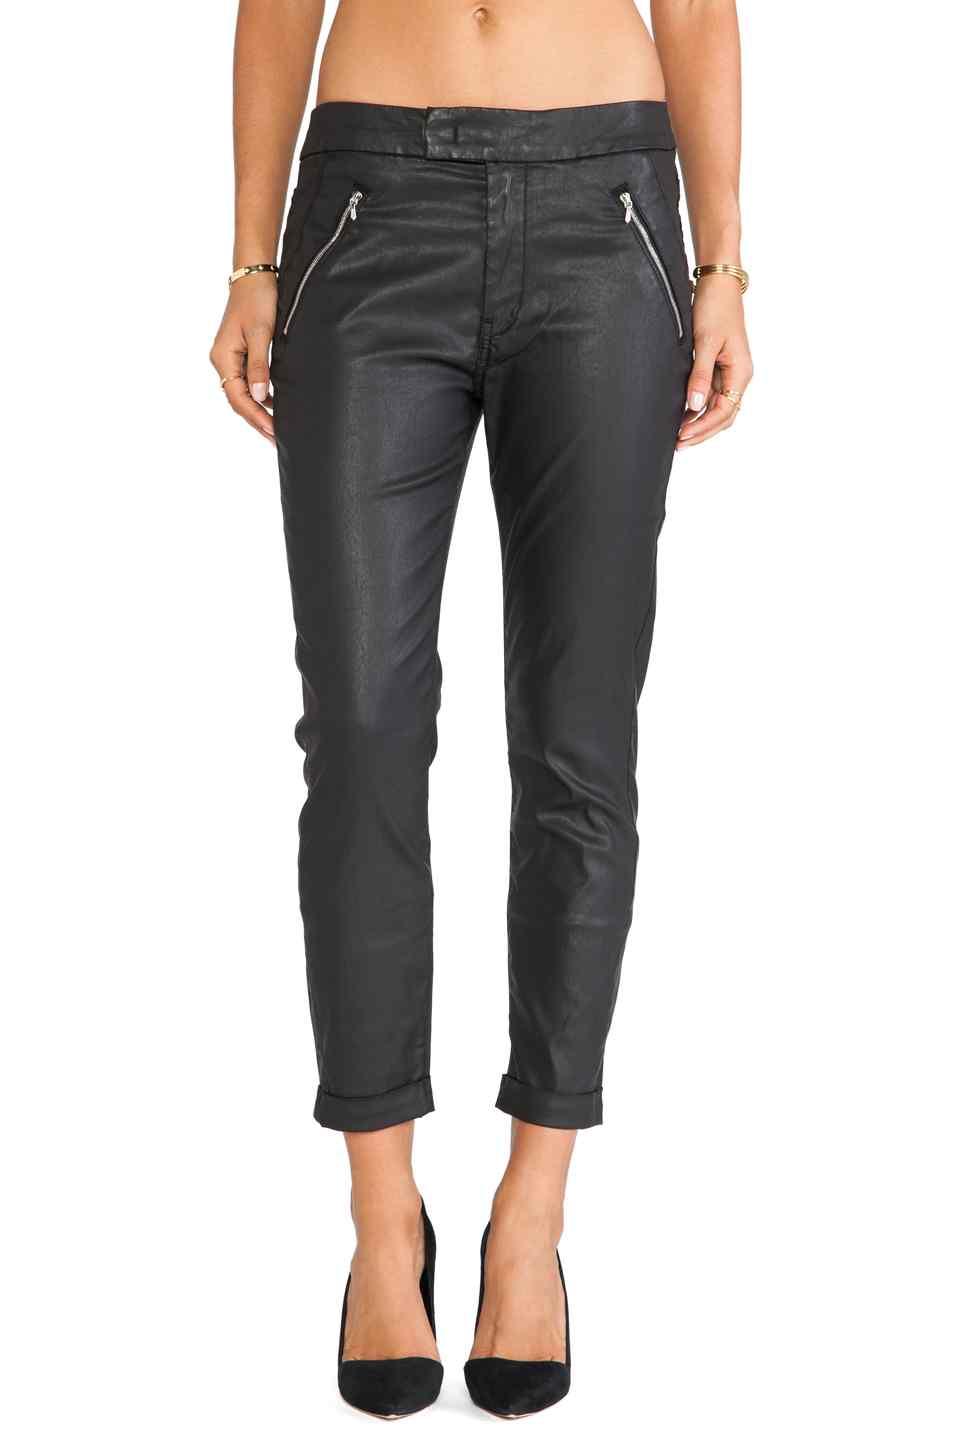 7 for all Mankind - Pantalon (186 €)